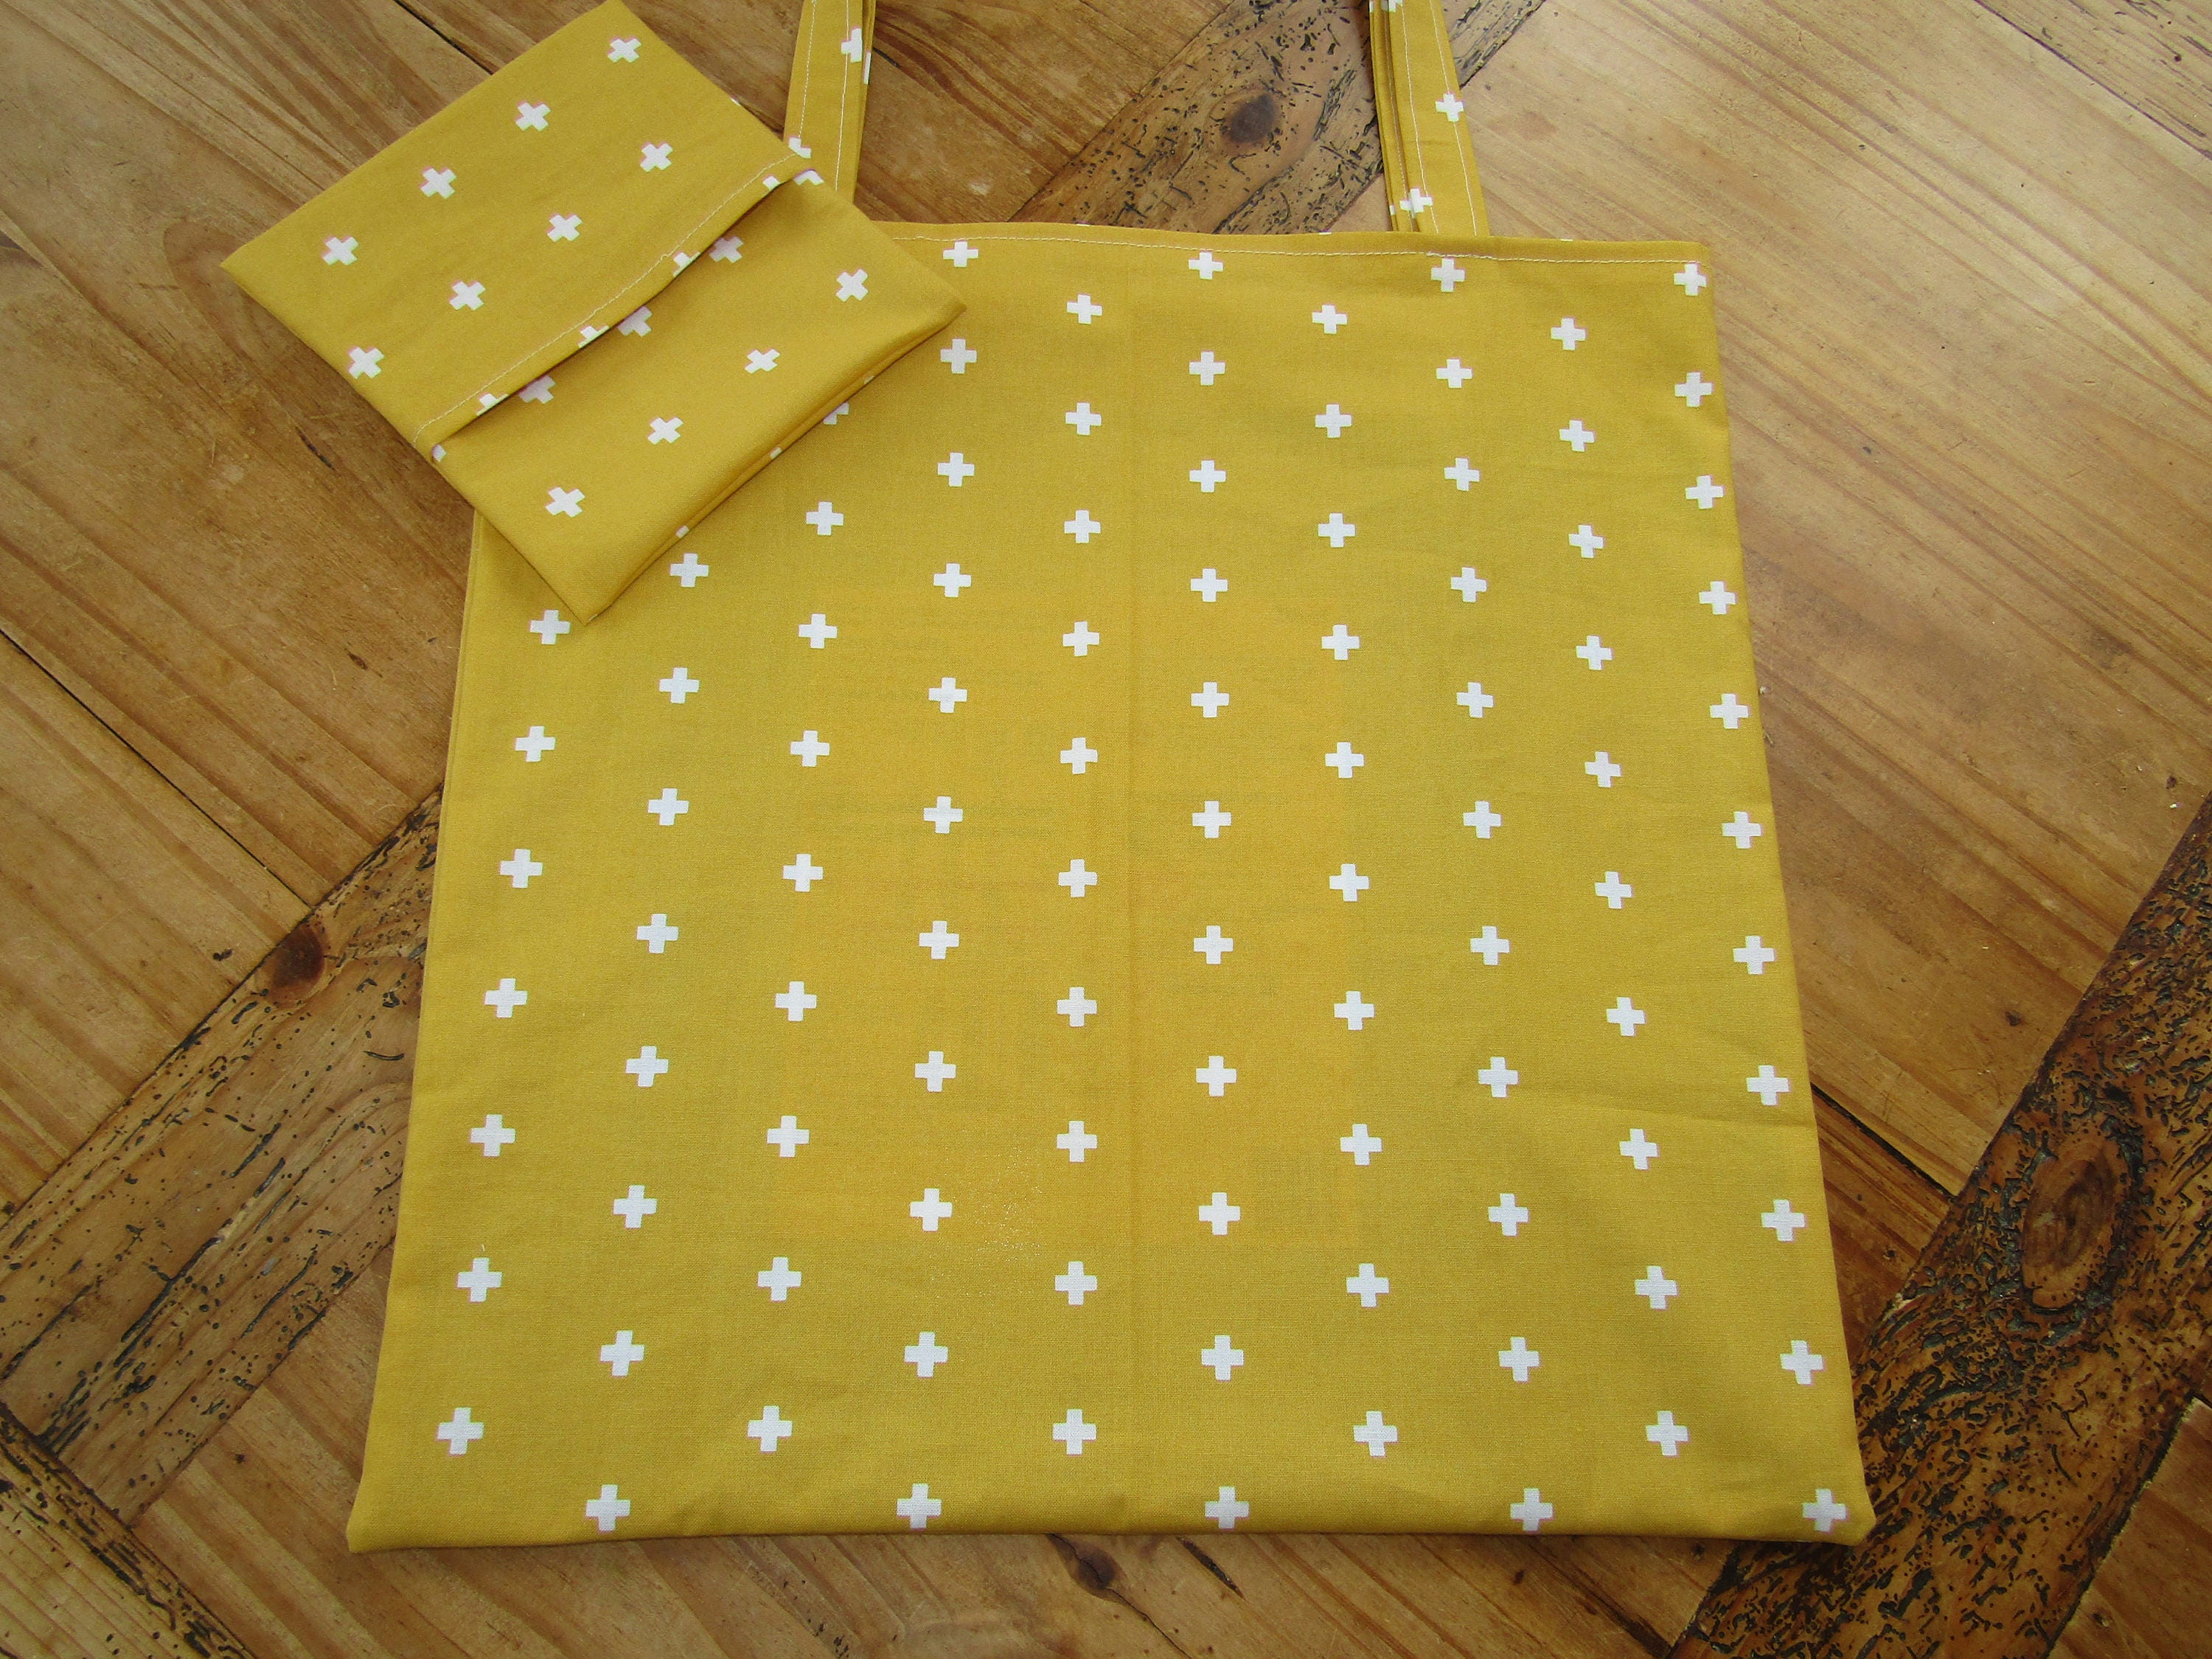 Foldaway shopping bag with pouch mustard shopper bag reusable bag handbag shopping bag mustard yellow bag